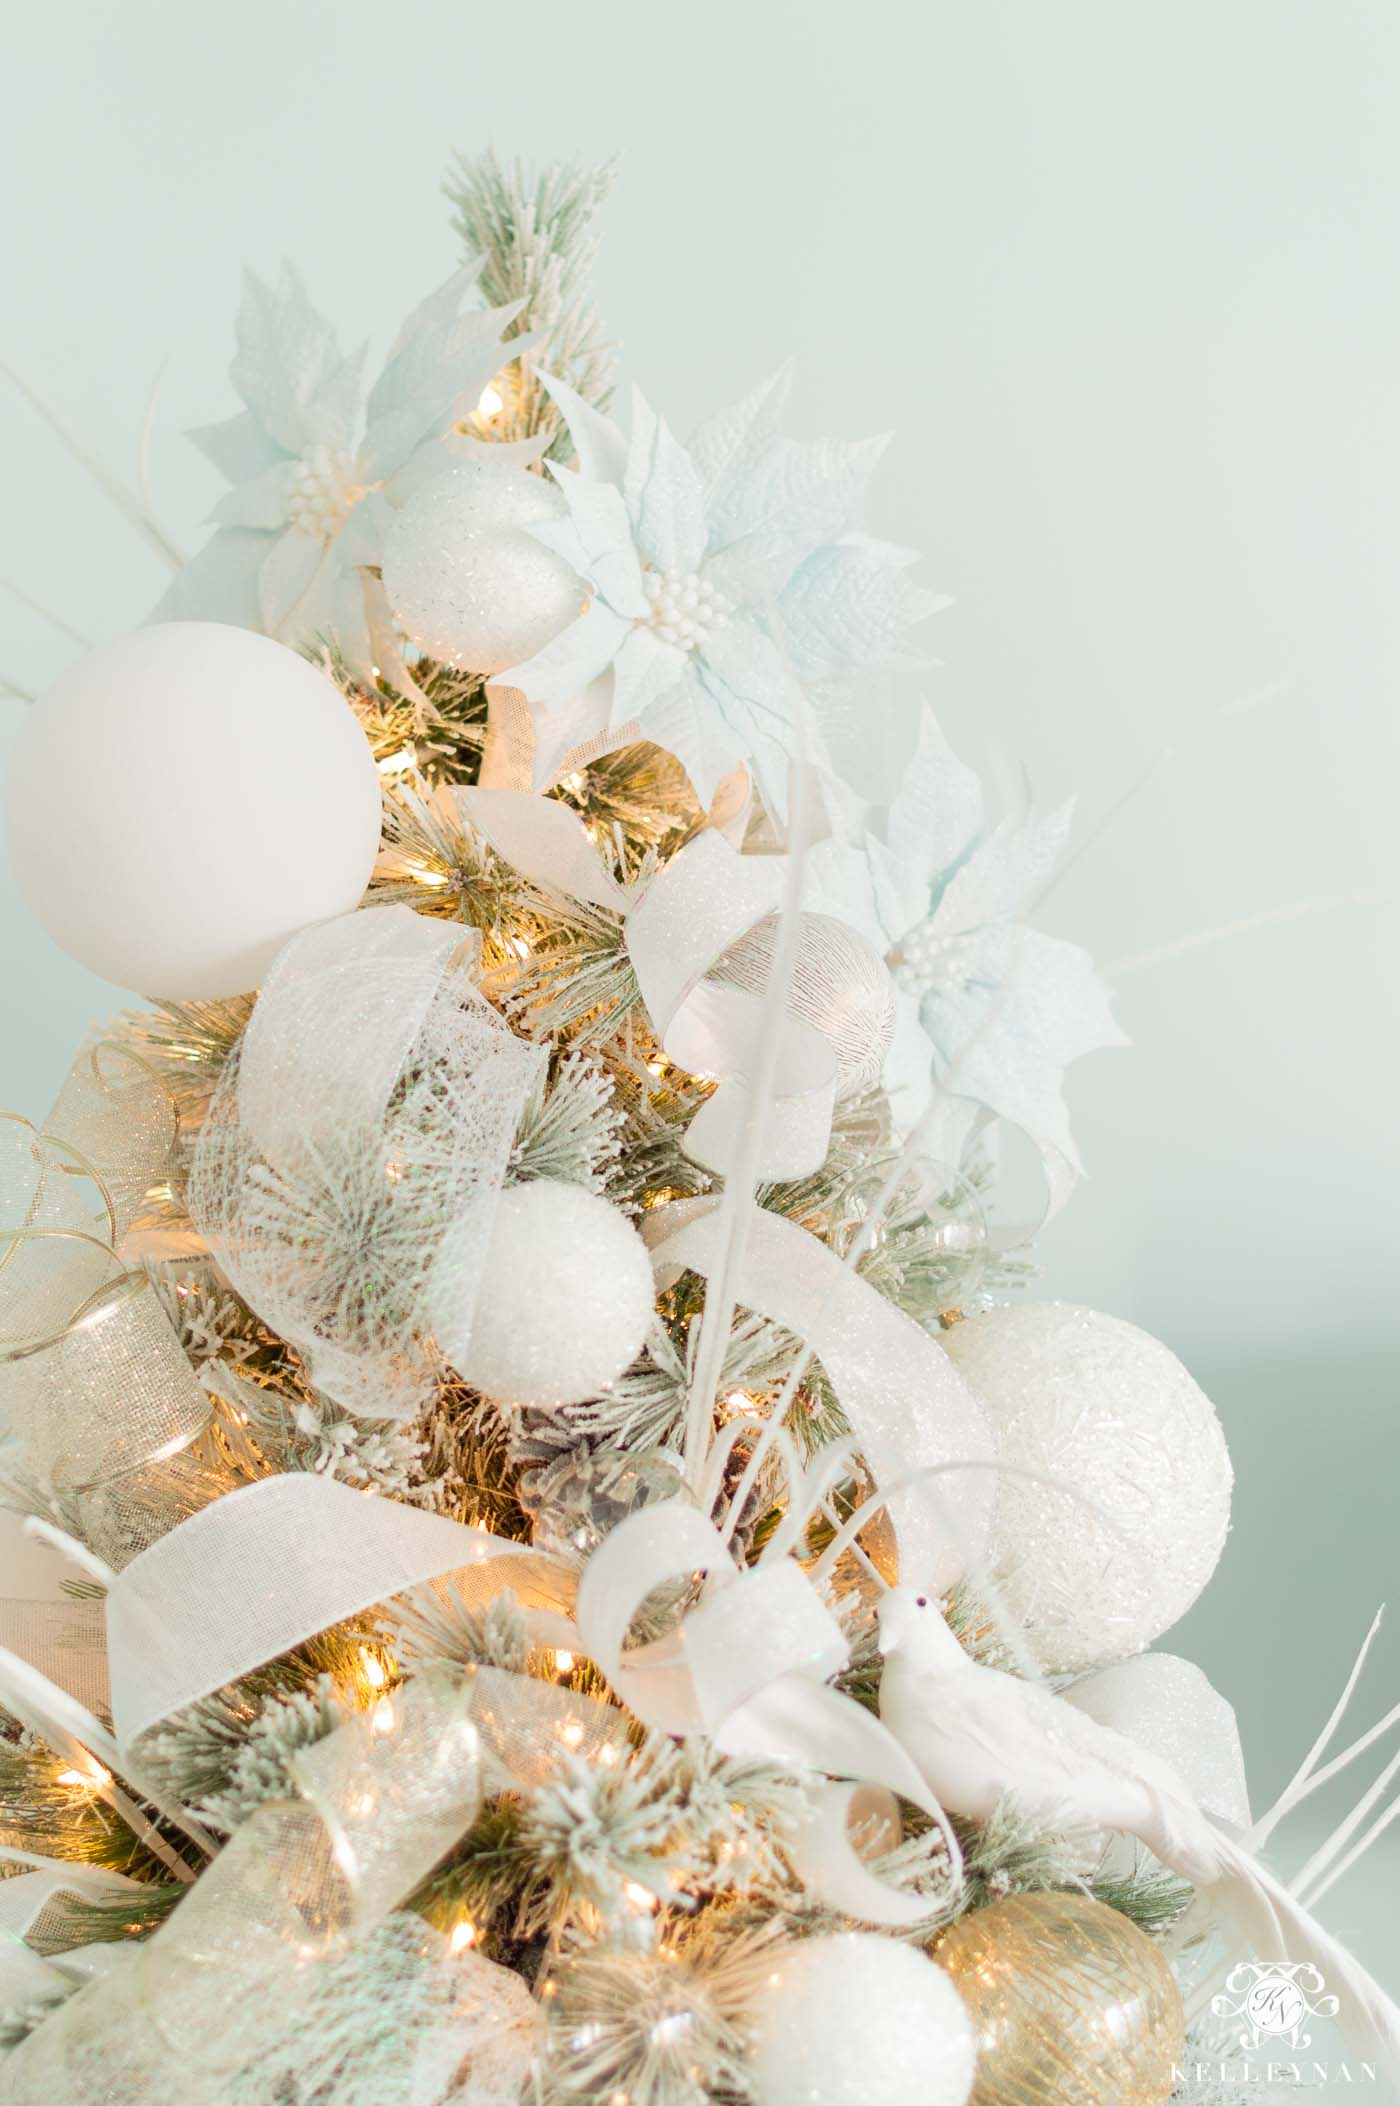 Flocked Christmas Tree with Snowy White & Icy Blue Decorations